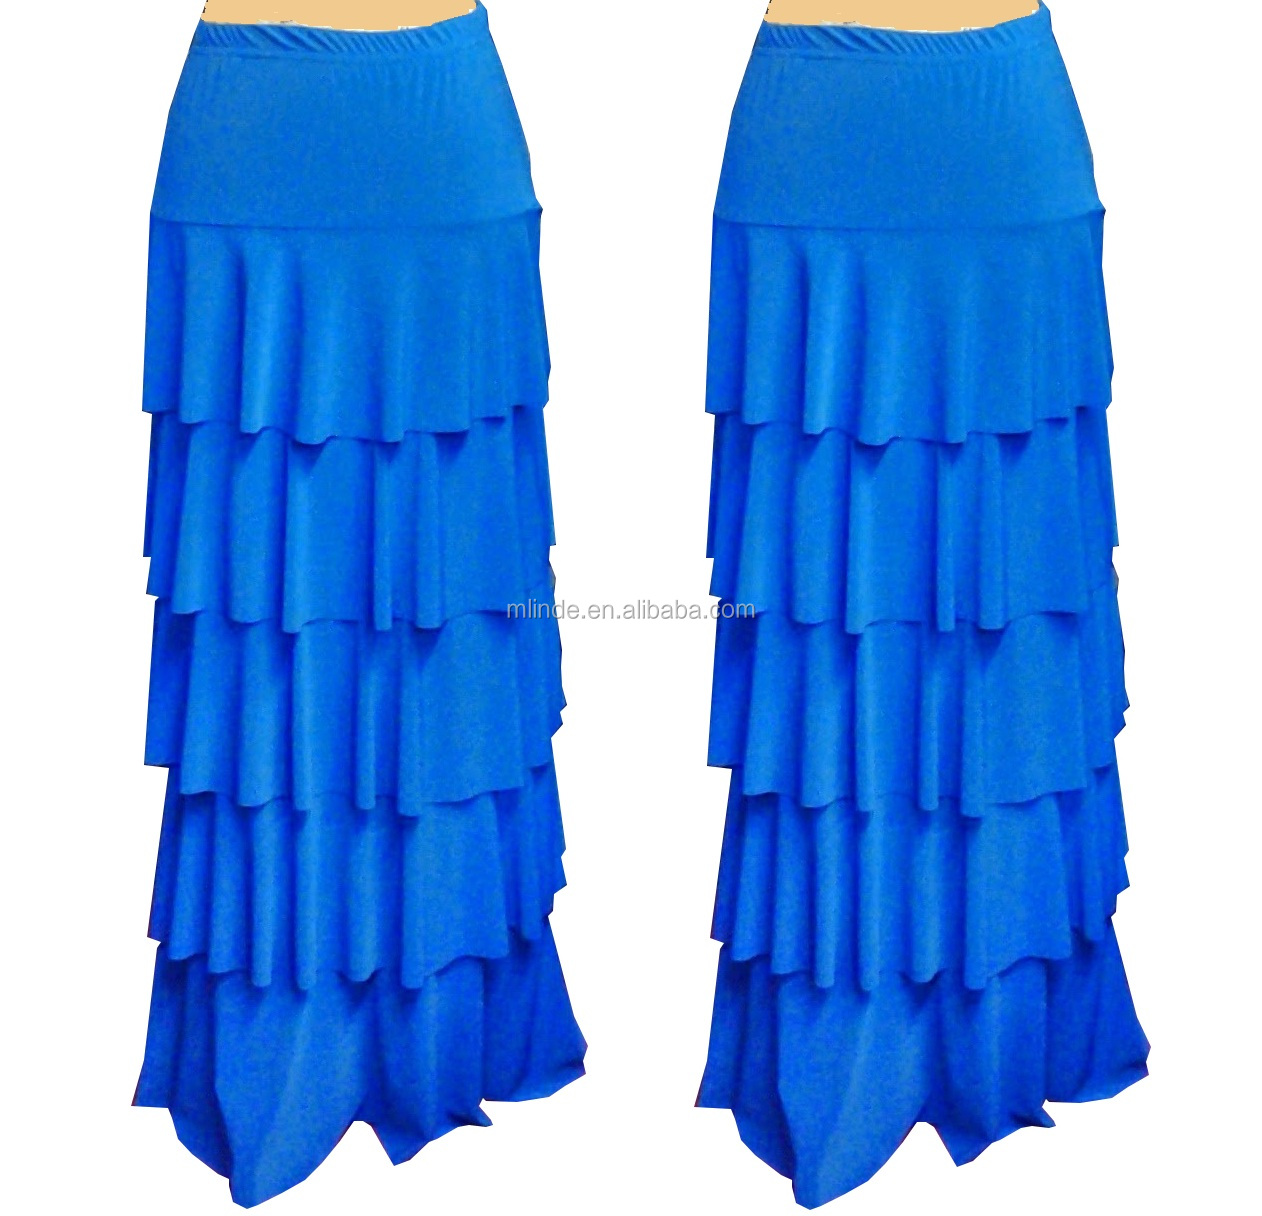 elegant women fashion maxi skirt / ladies ruffle tiered layer long skirt manufacture